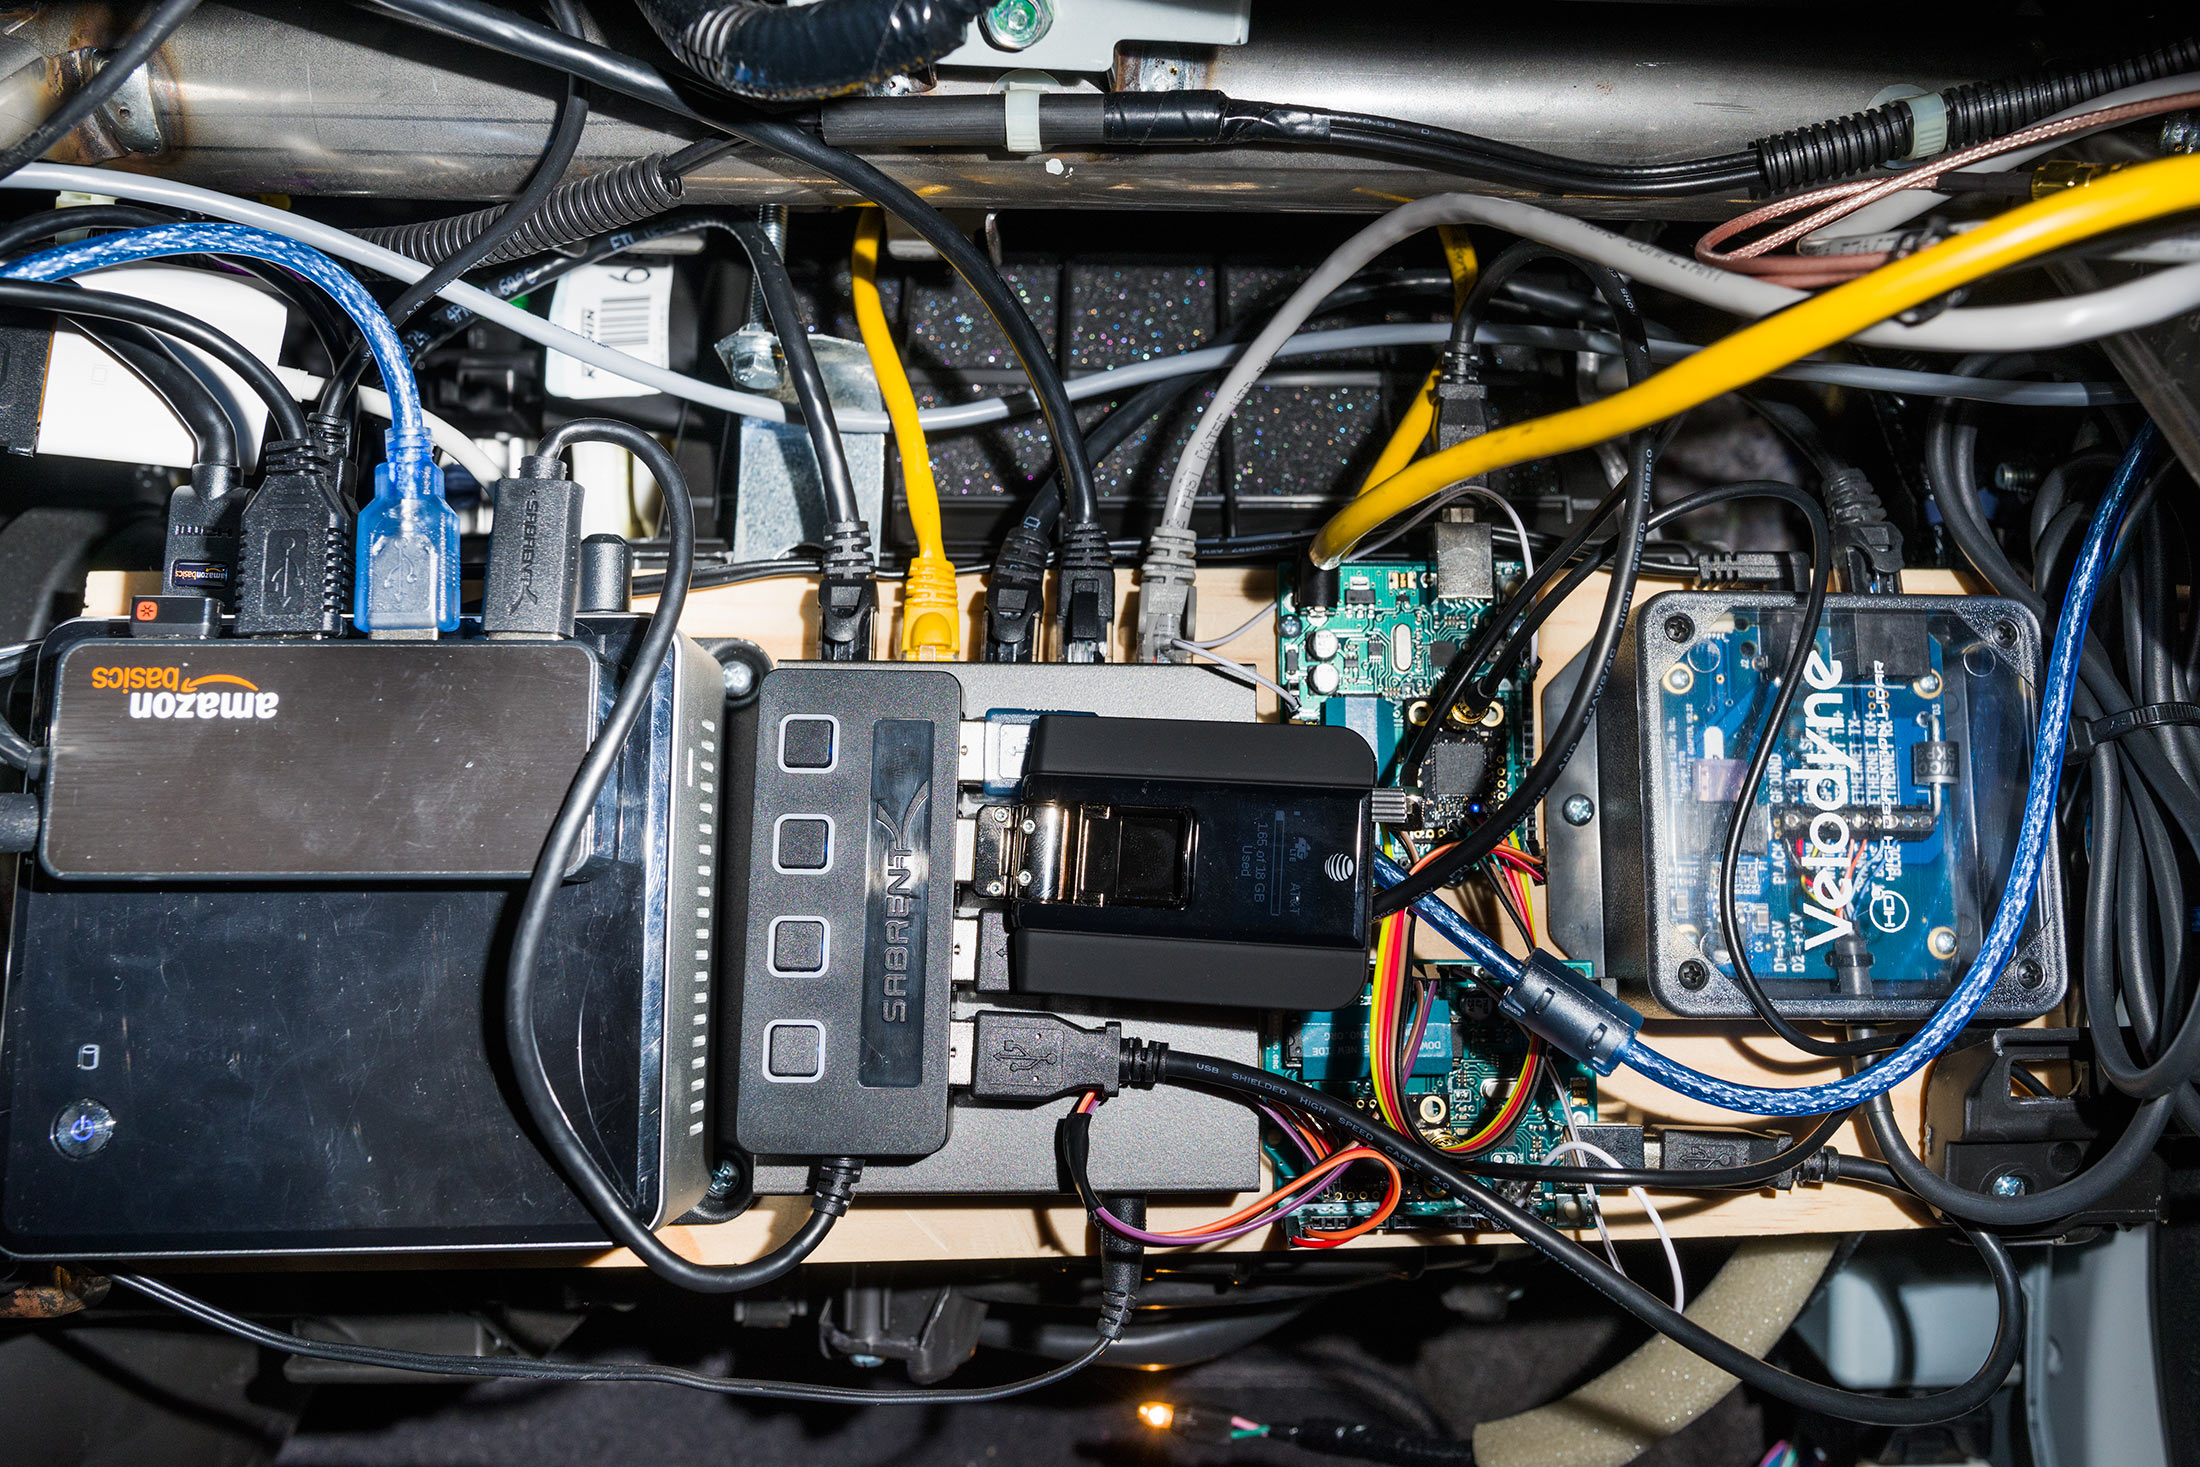 The electronics in George Hotz's glove compartment